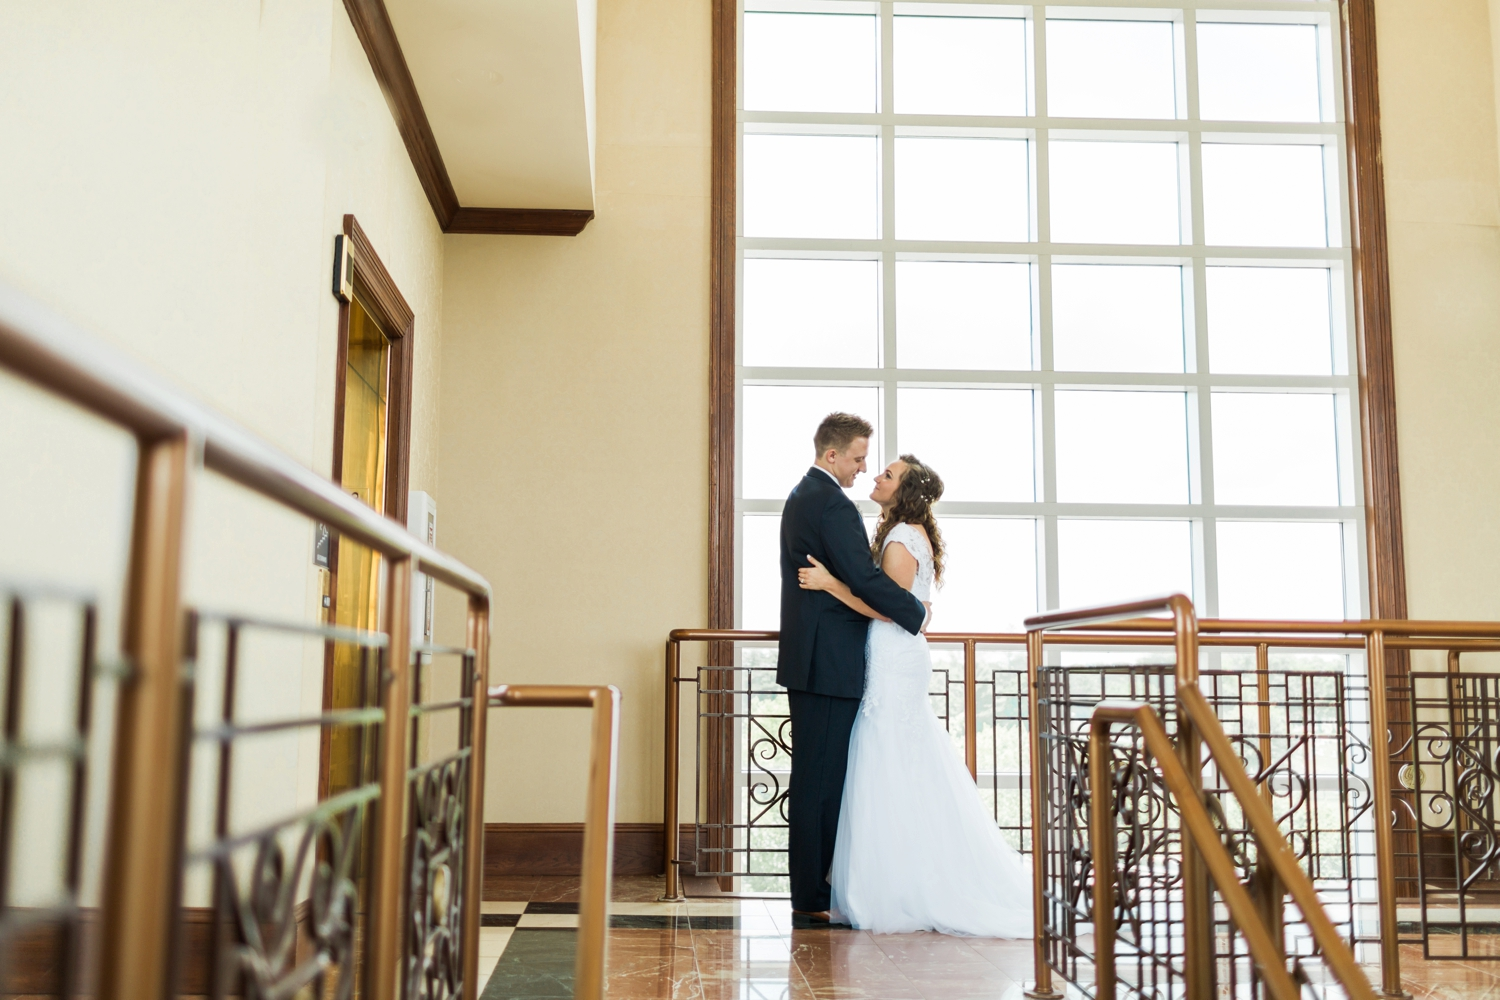 Community_Life_Center_Indianapolis_Indiana_Wedding_Photographer_Chloe_Luka_Photography_6885.jpg